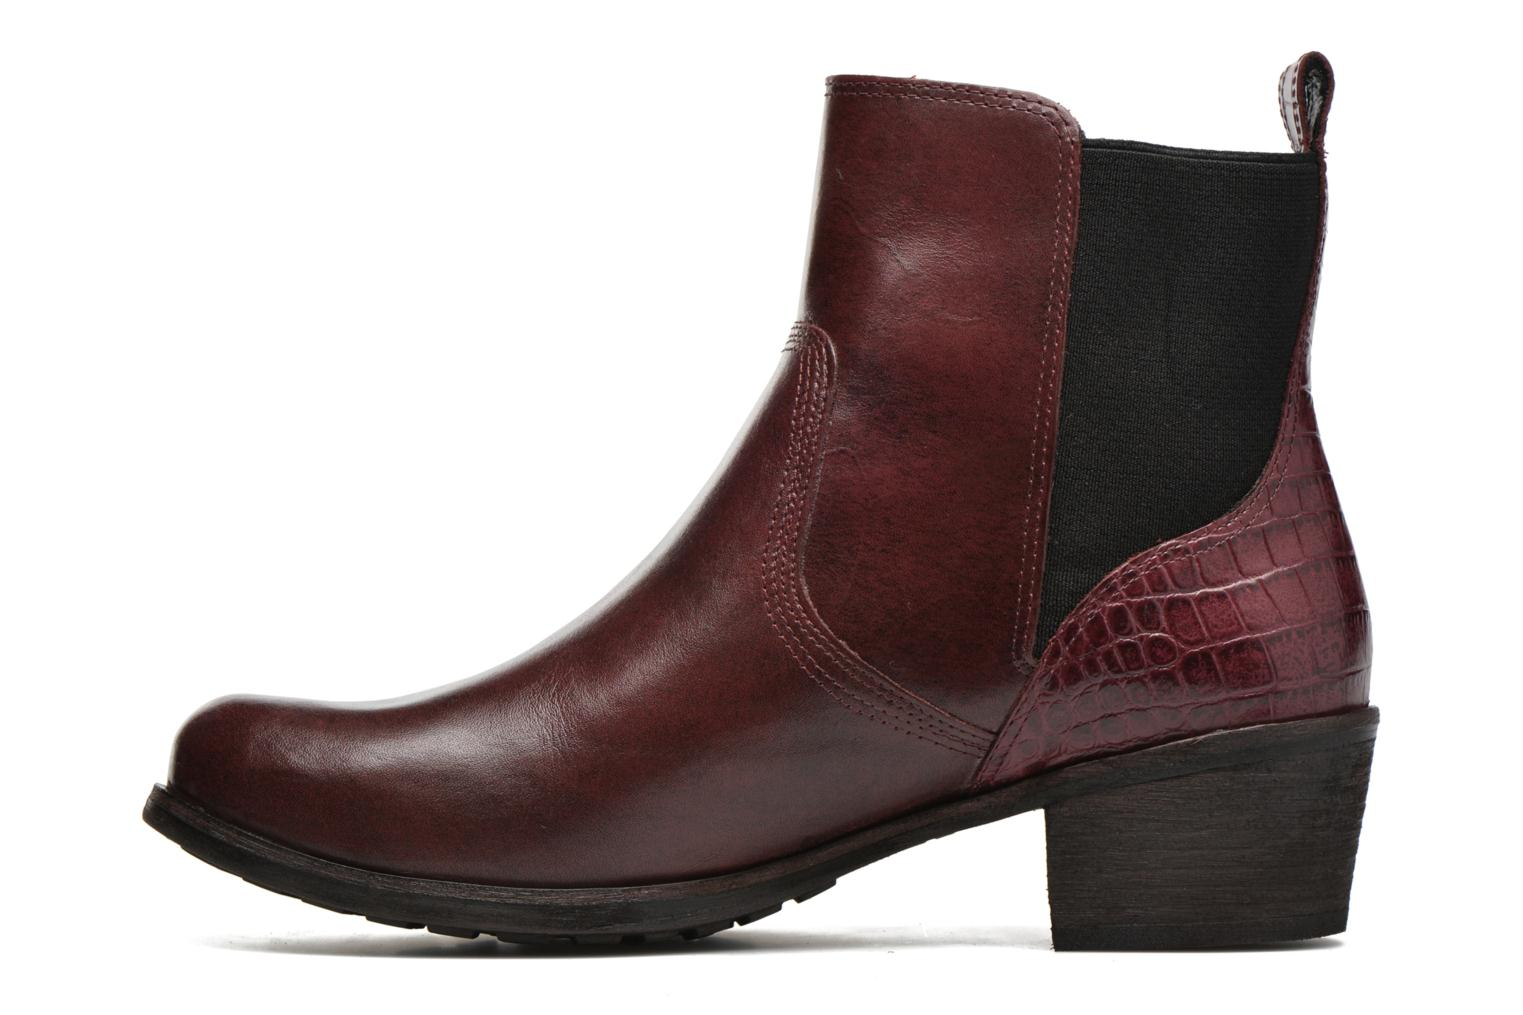 Bottines et boots UGG W Keller Croco Rouge vue face